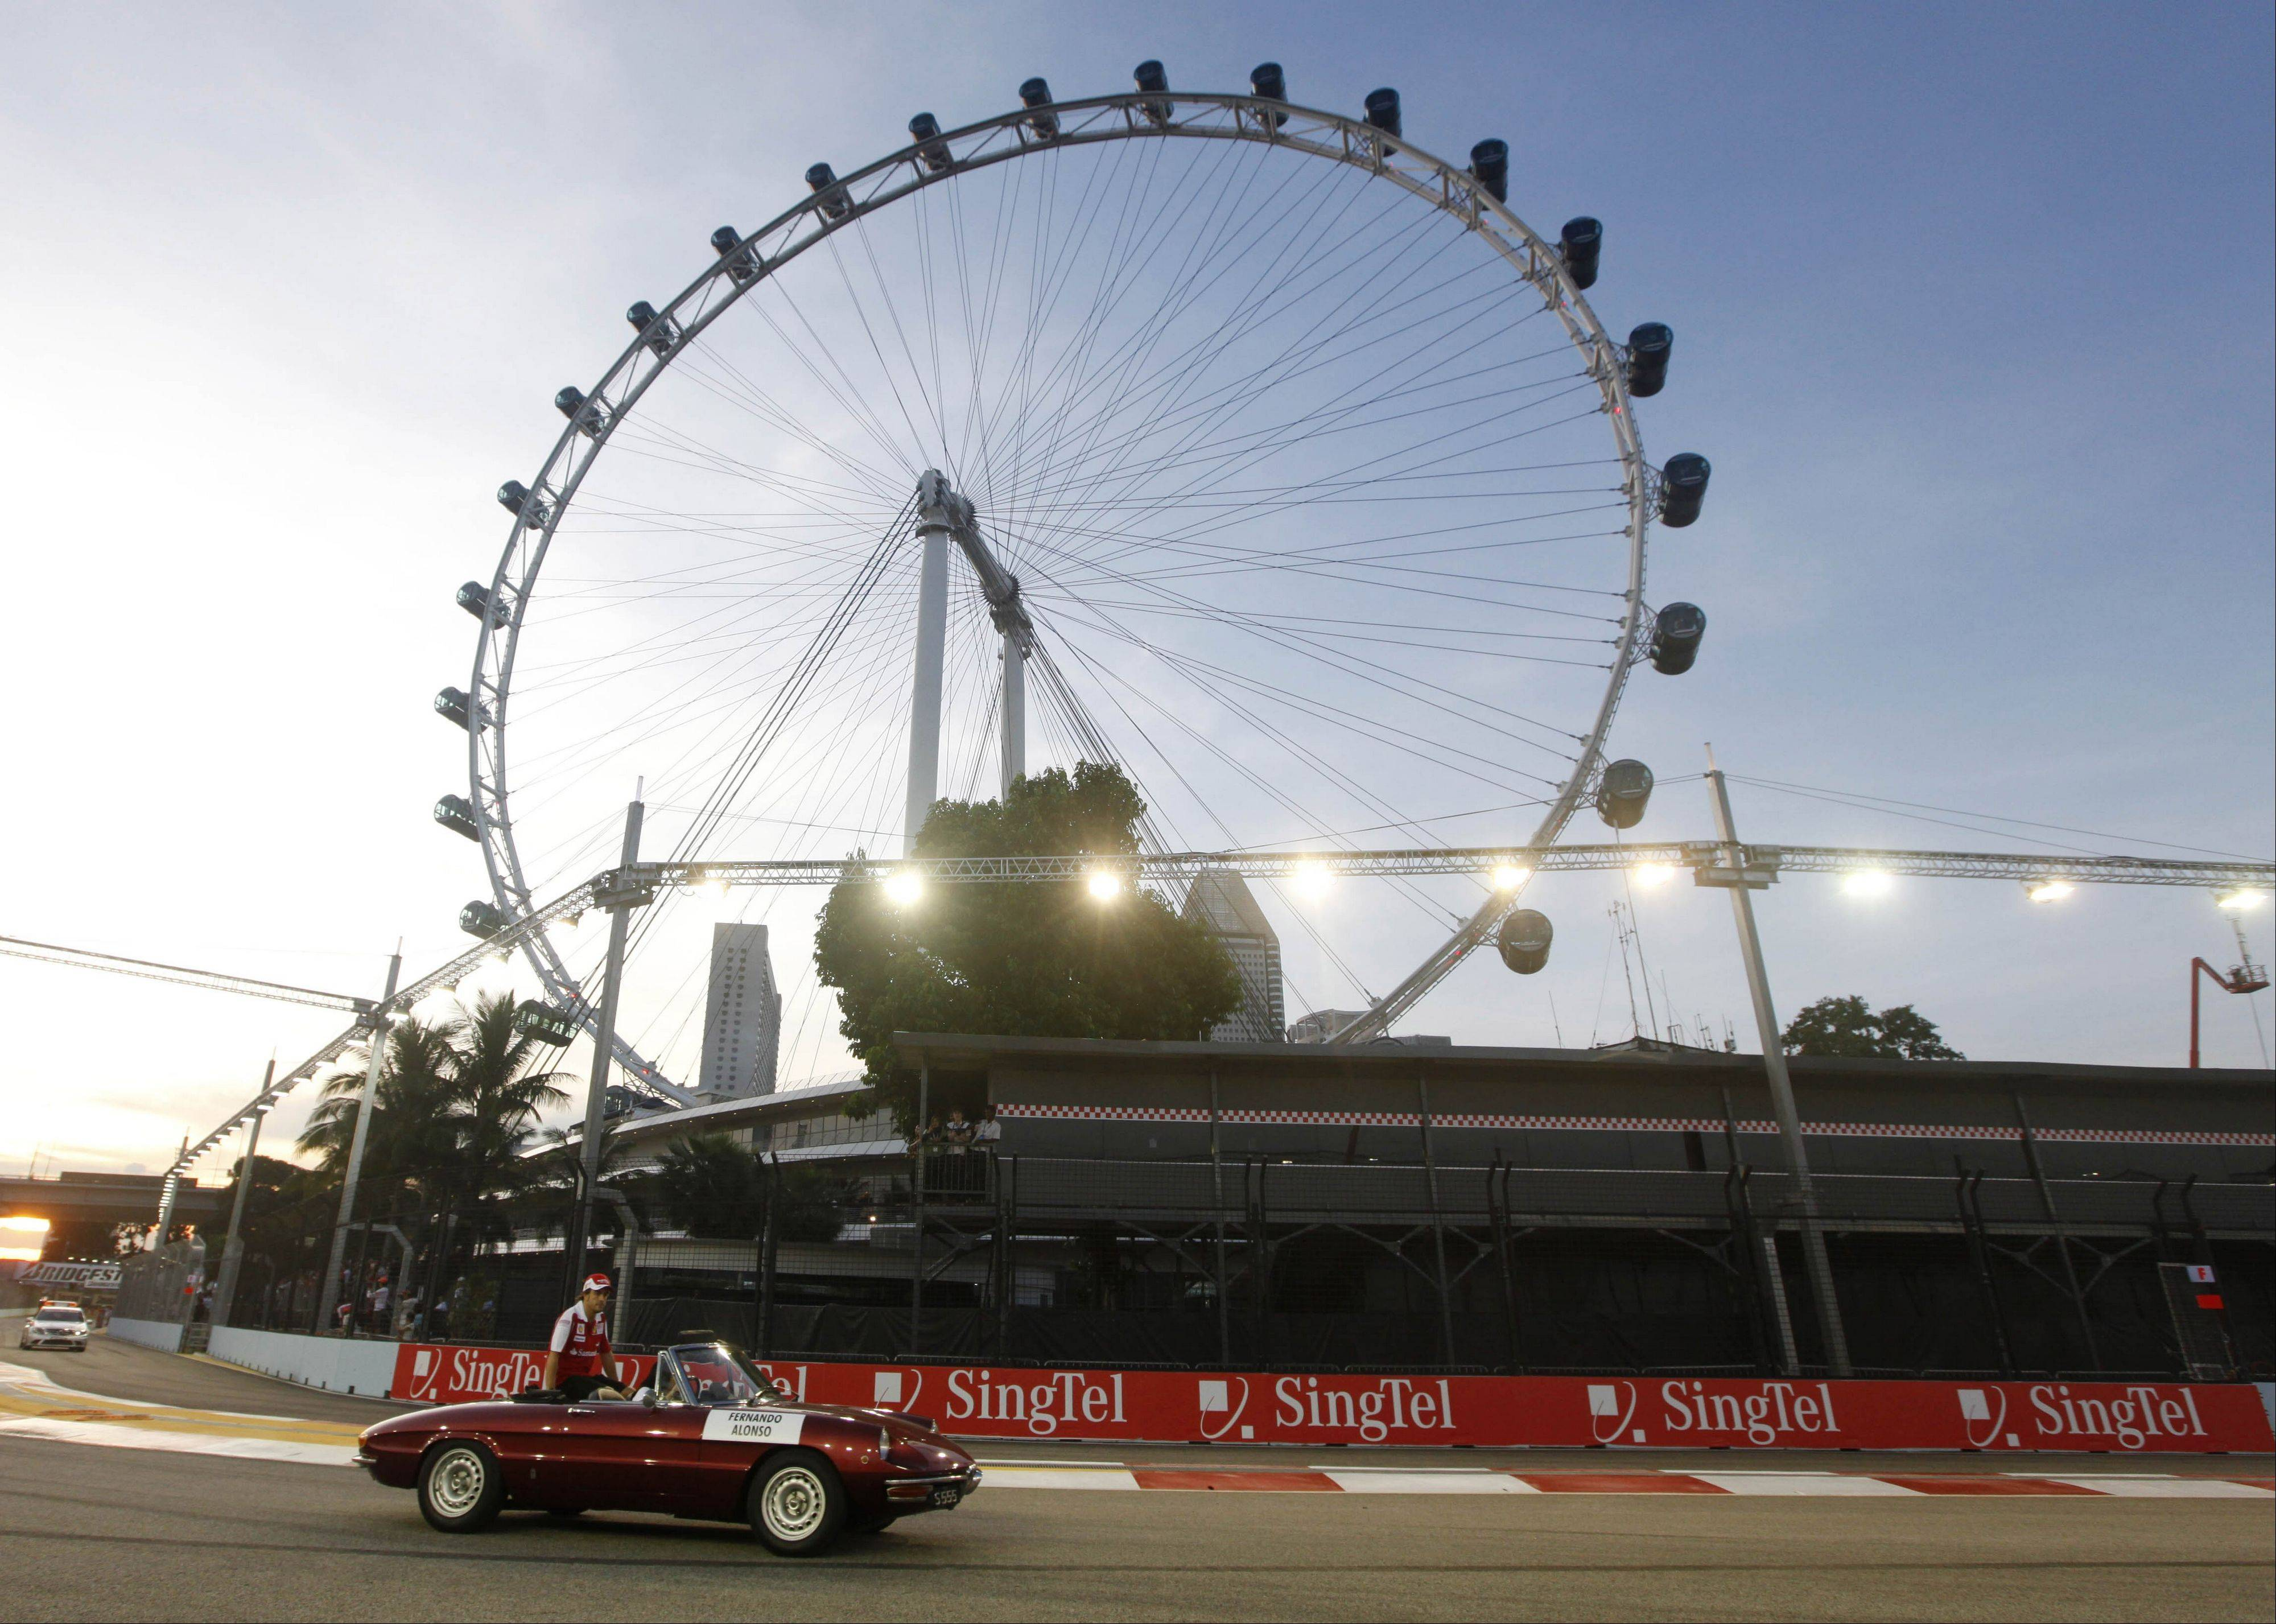 FILE — In this Sept. 26, 2010 file photo, Ferrari Formula One driver Fernando Alonso of Spain is driven past the 541 foot tall ìSingapore Flyerî Ferris wheel during the driverí parade prior to the start of the Singapore Grand Prix on the Marina Bay City Circuit in Singapore. The proposed New York Wheel in the Staten Island borough of New York is planned to be 625 feet tall, and expected to open by the end of 2015. (AP Photo/Mark Baker, File)